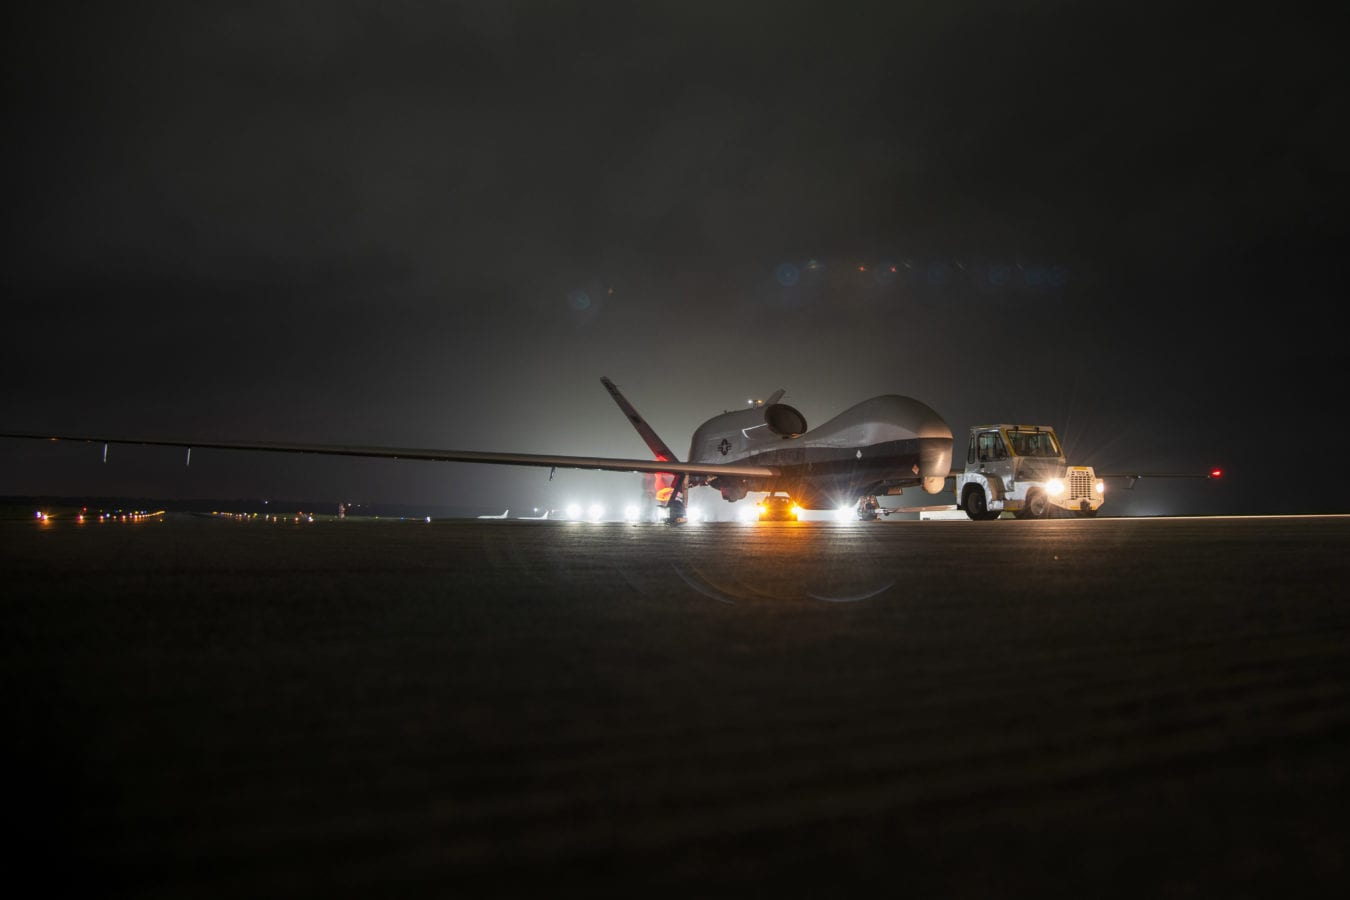 Triton unmanned aircraft system (UAS) idles on a runway at Andersen Air Force Base after arriving for a deployment as part of an early operational capability (EOC) test to further develop the concept of operations and fleet learning associated with operating a high-altitude, long-endurance system in the maritime domain. (U.S. Navy photo by Mass Communication Specialist 3rd Class MacAdam Kane Weissman/Released)